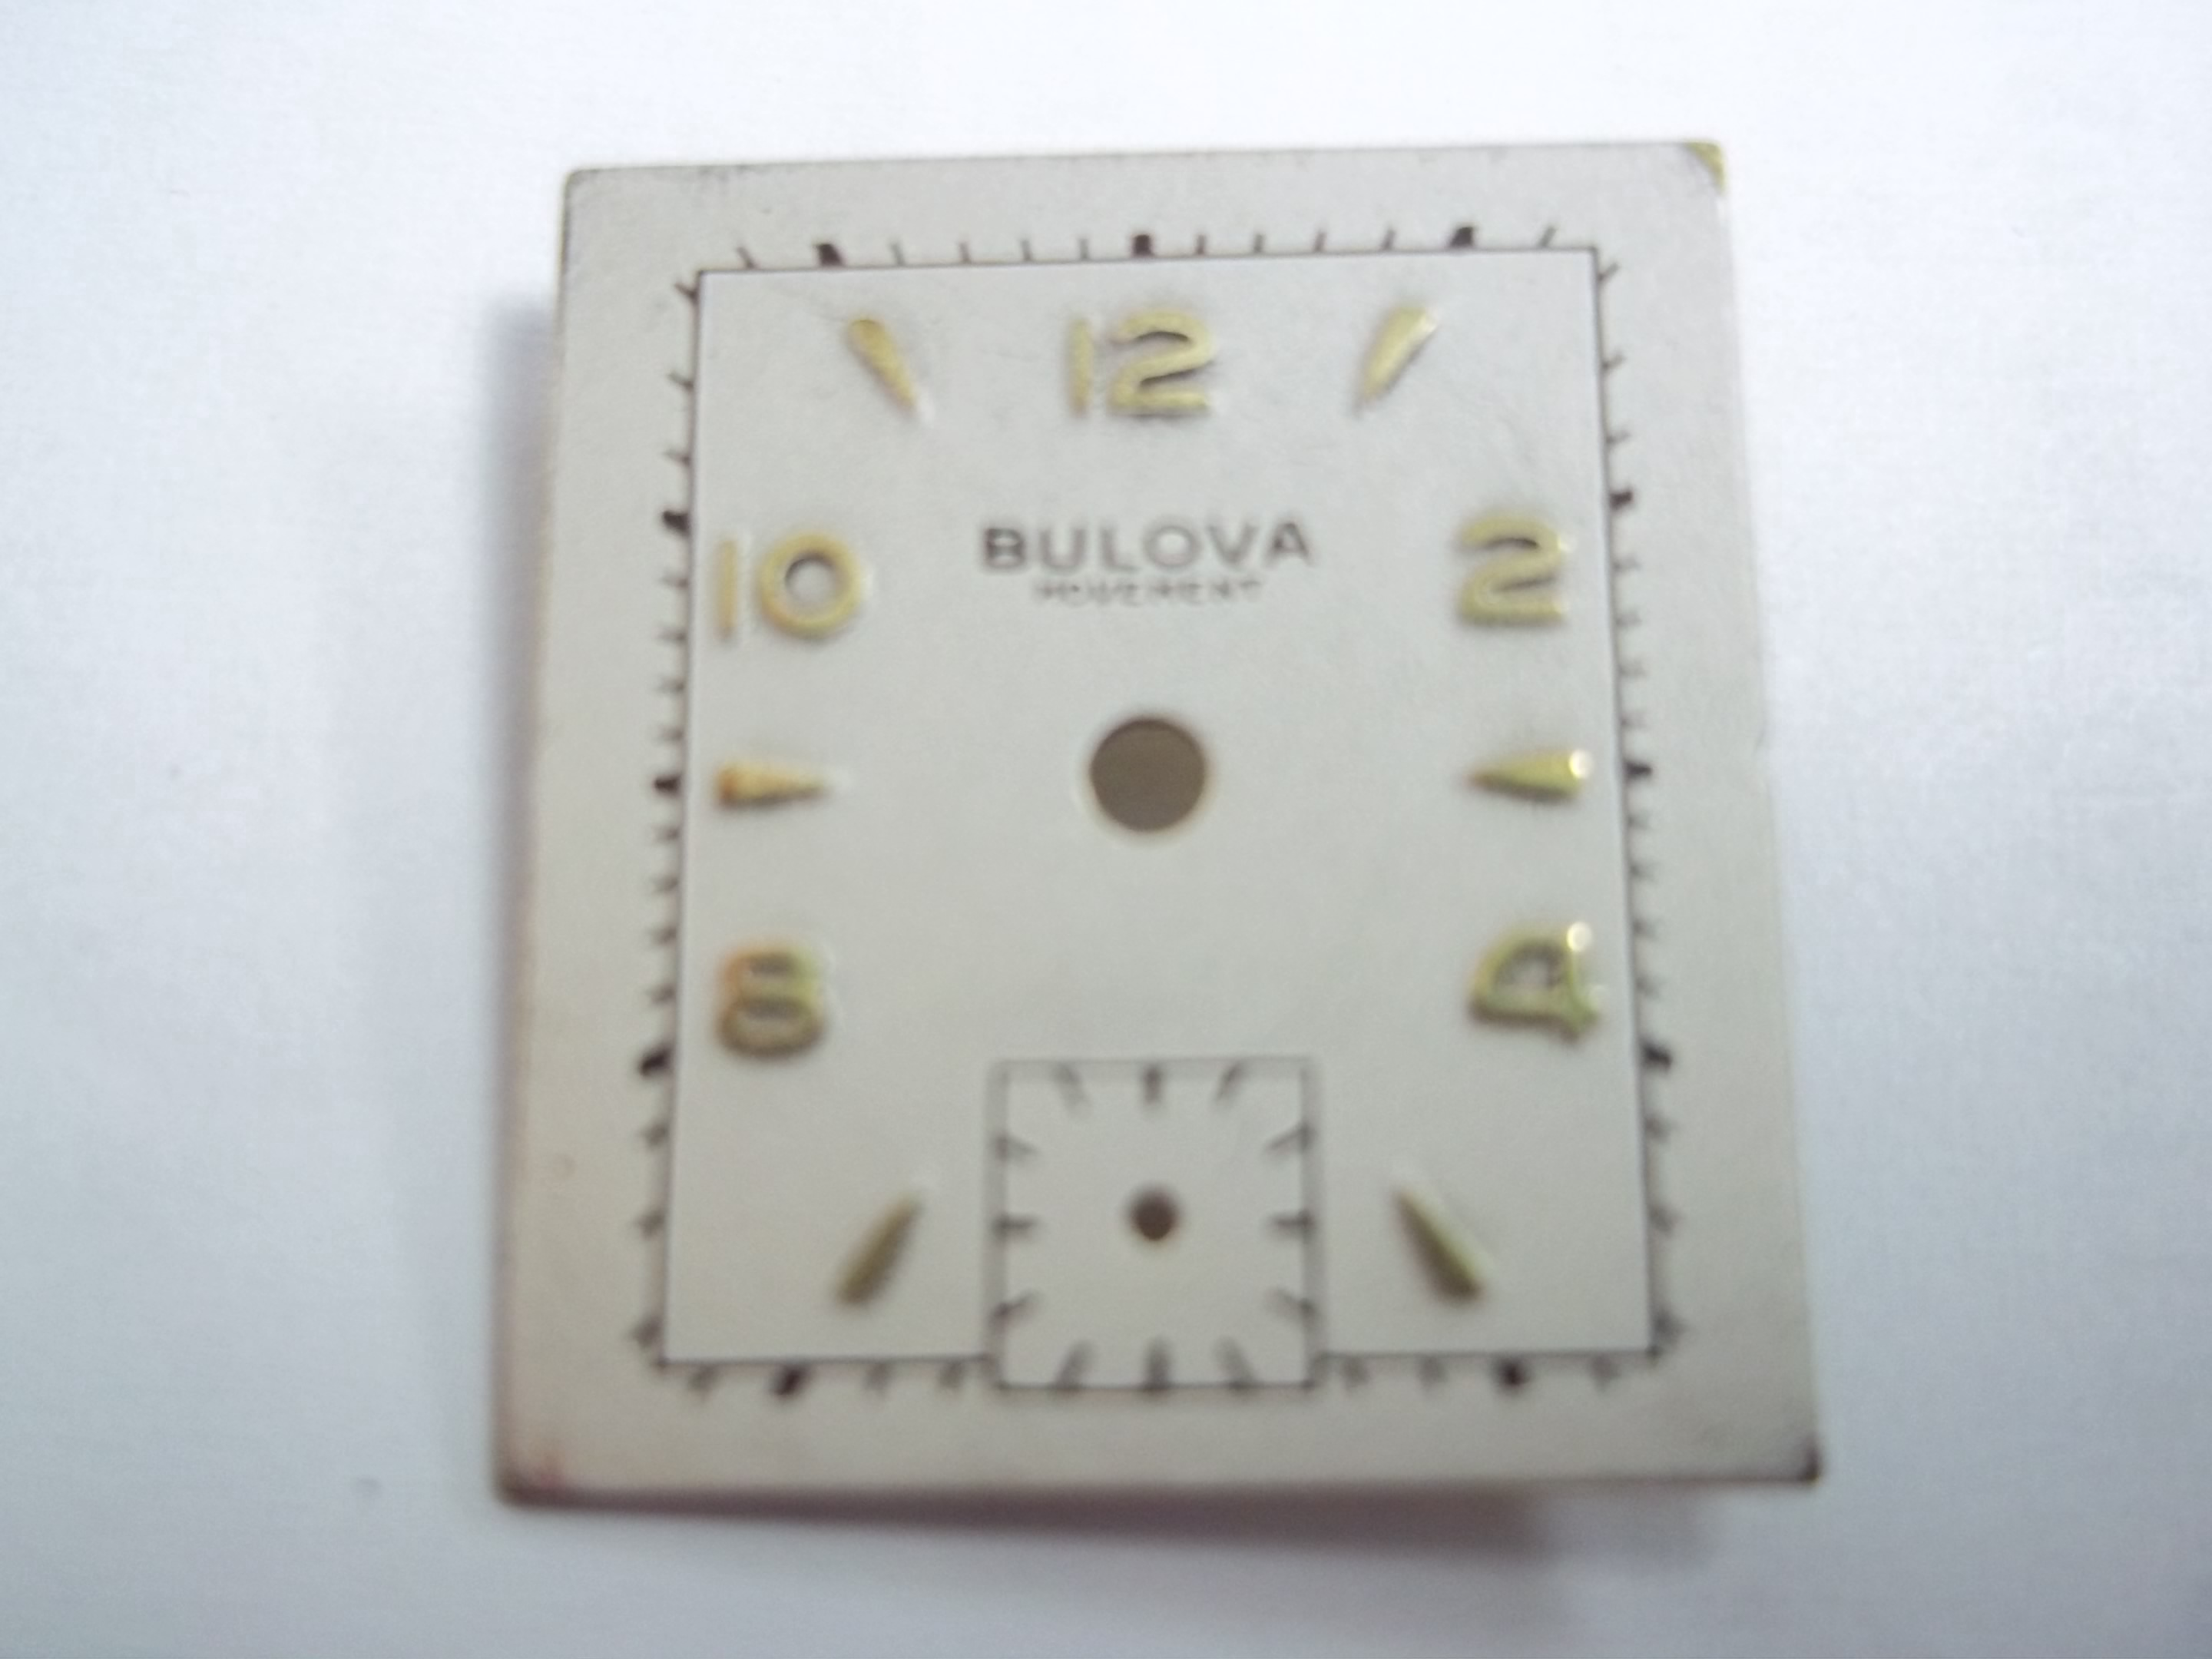 WD-B101 Bulova Watch Dial--as is